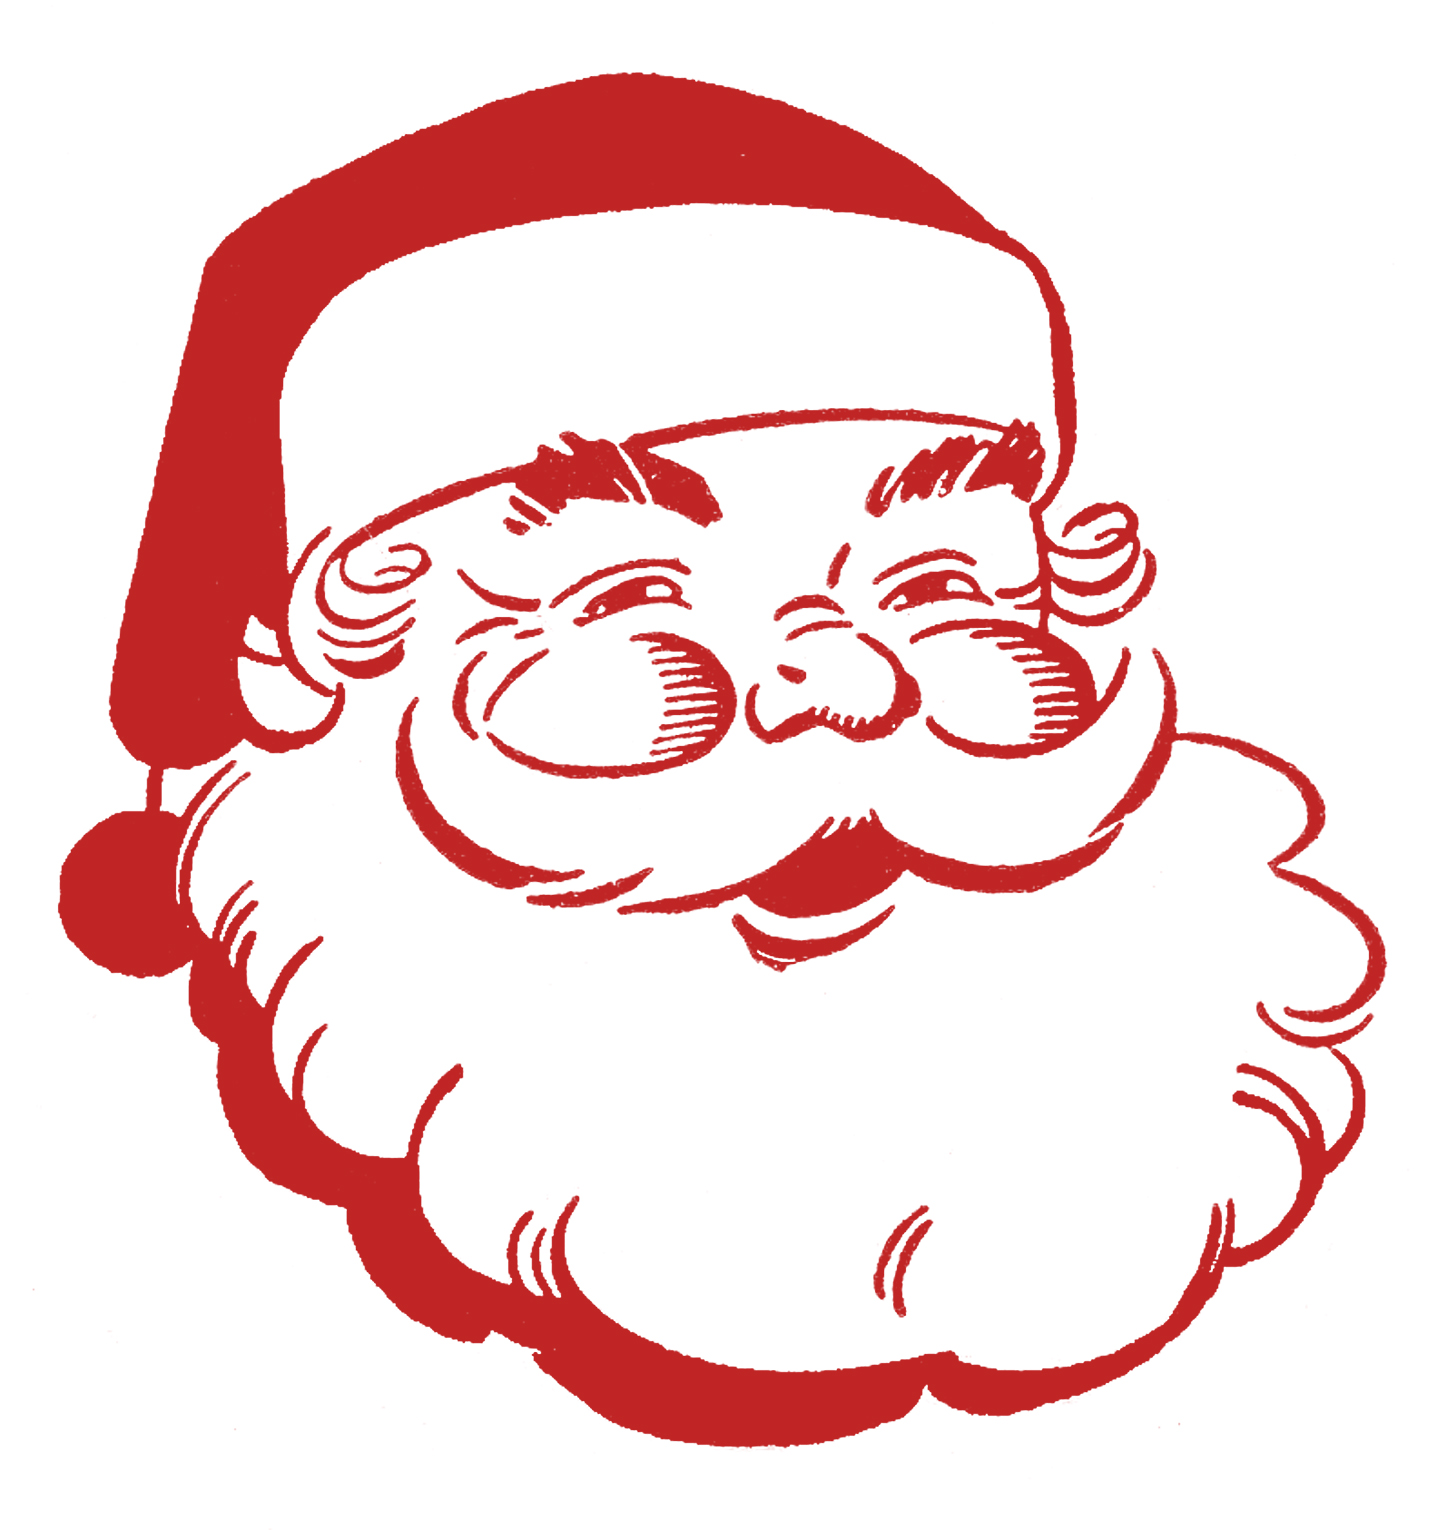 Retro Christmas Clip Art Jolly Santa The-Retro Christmas Clip Art Jolly Santa The Graphics Fairy-11